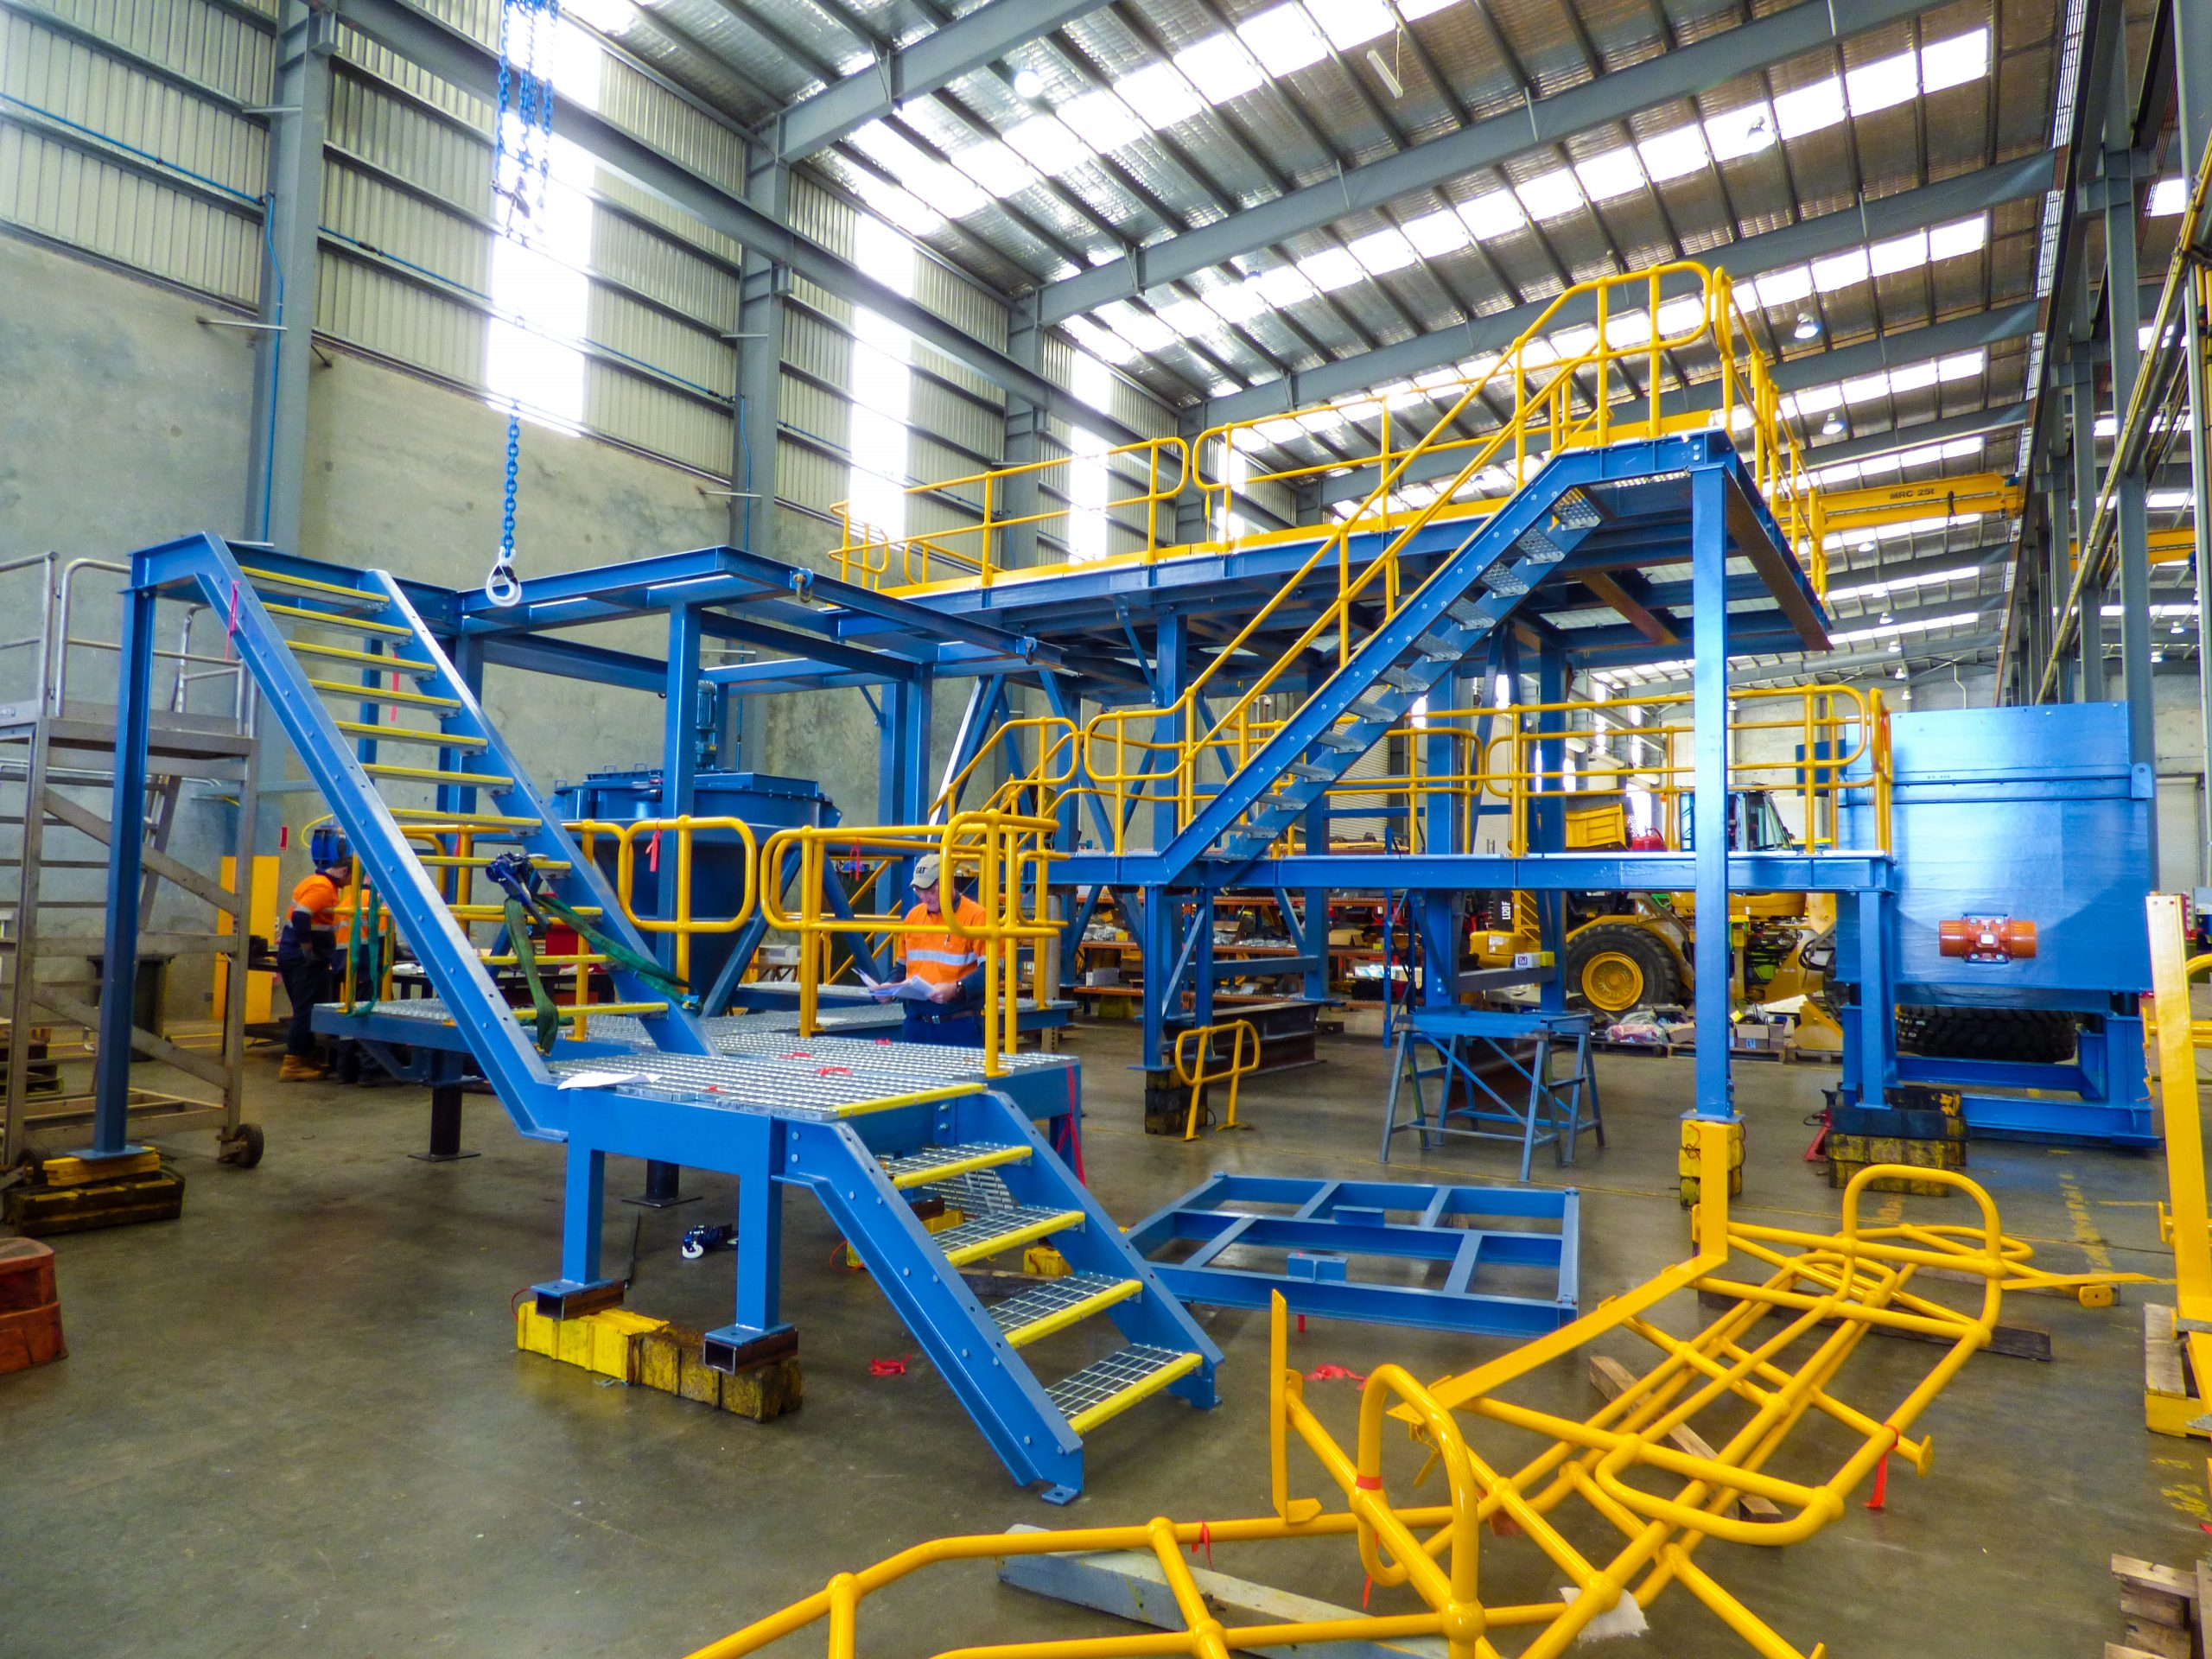 Paste Fill Plant Fabrication- Custom Fabrication for any project